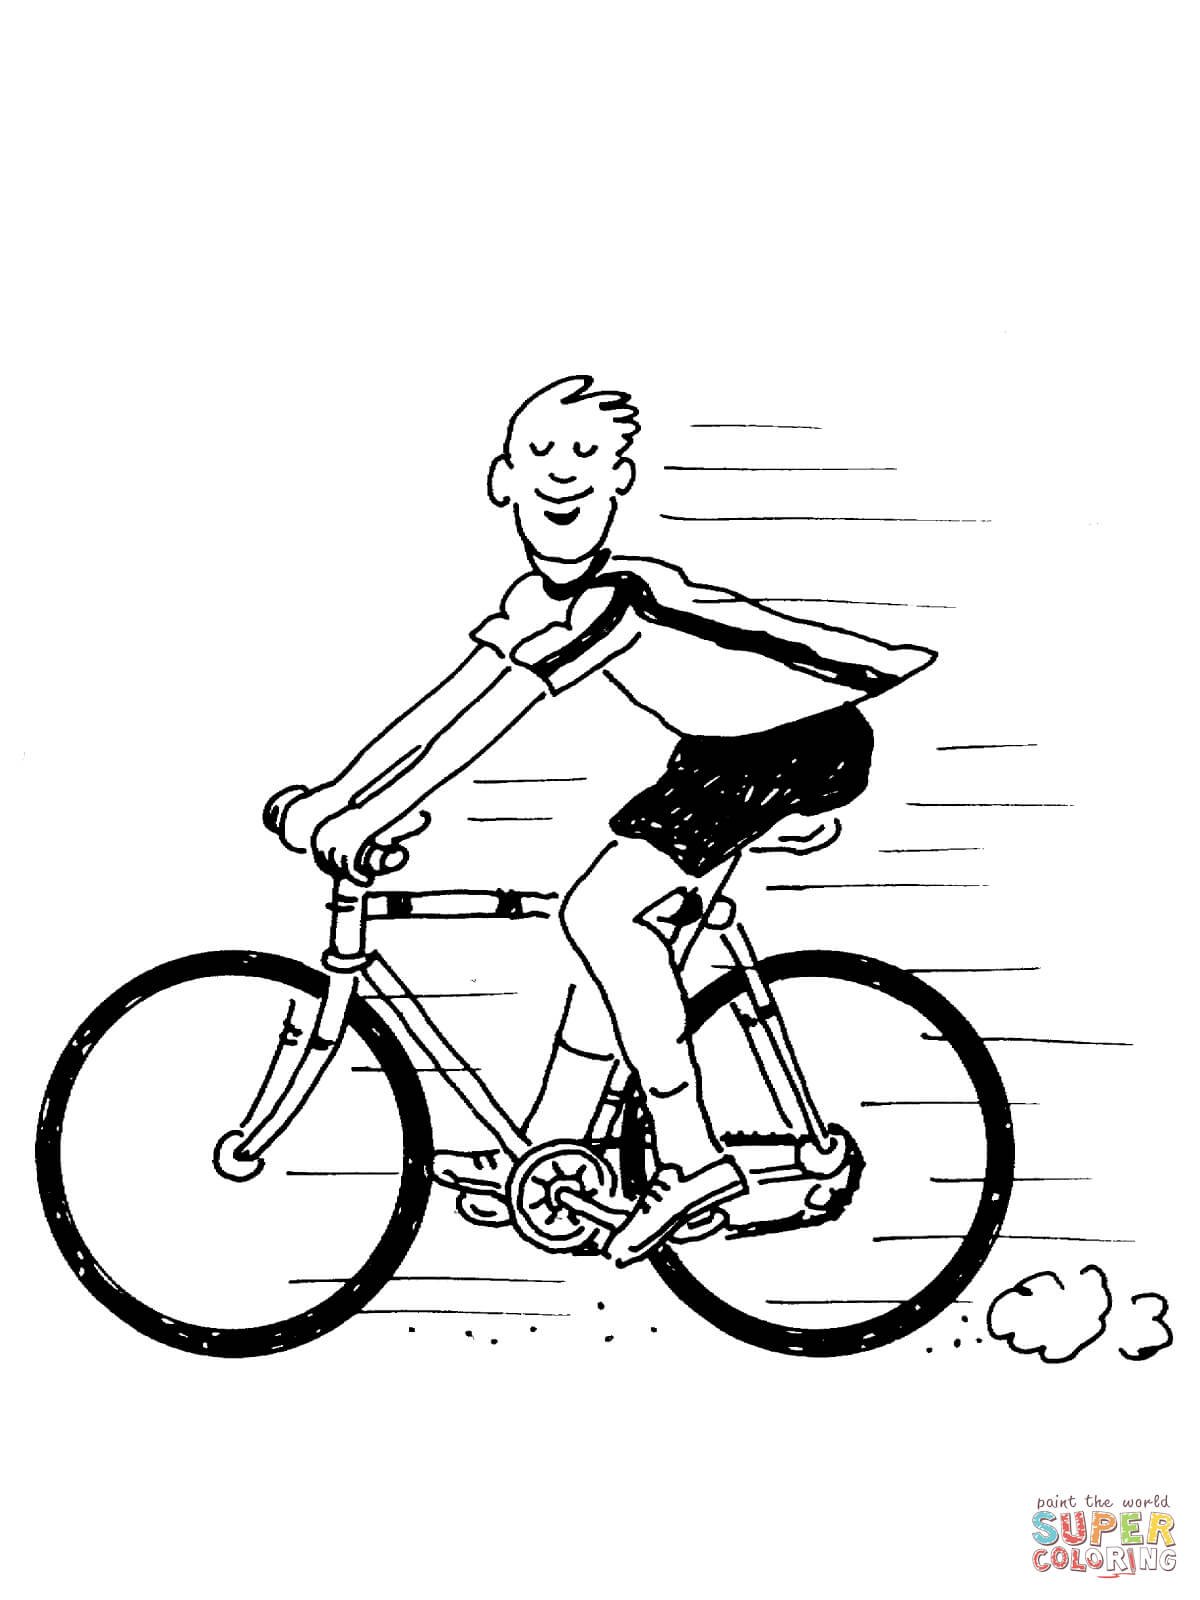 Cycling coloring pages | Free Coloring Pages